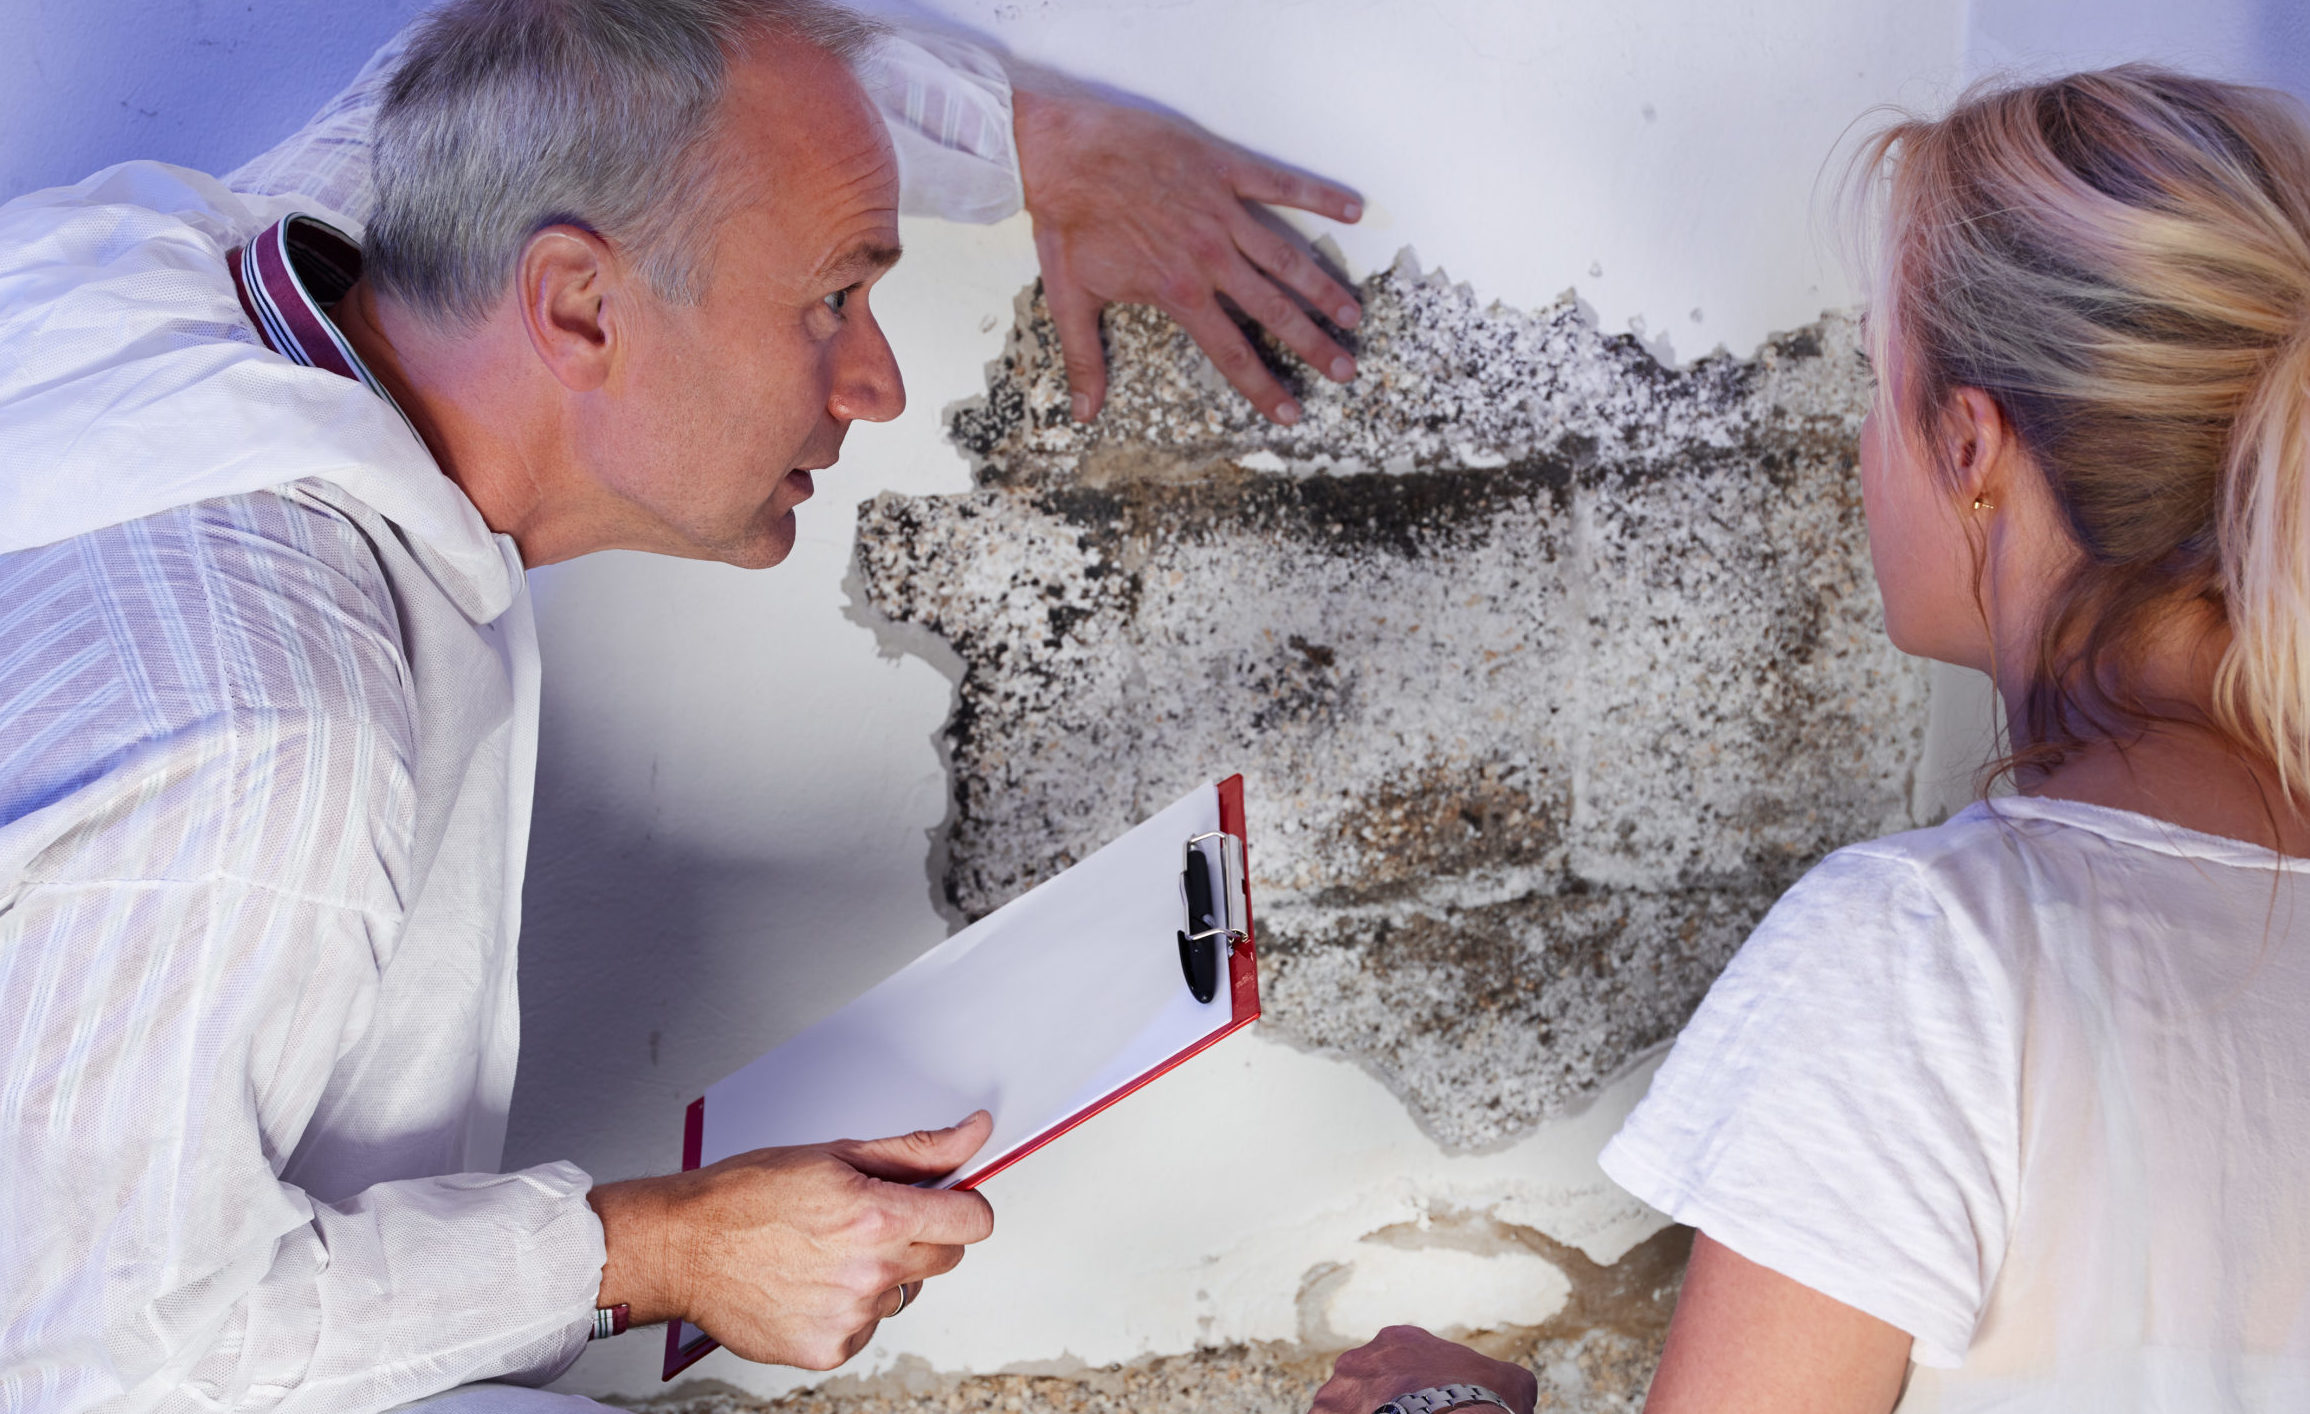 How can tenants and landlords prevent damp and mould?